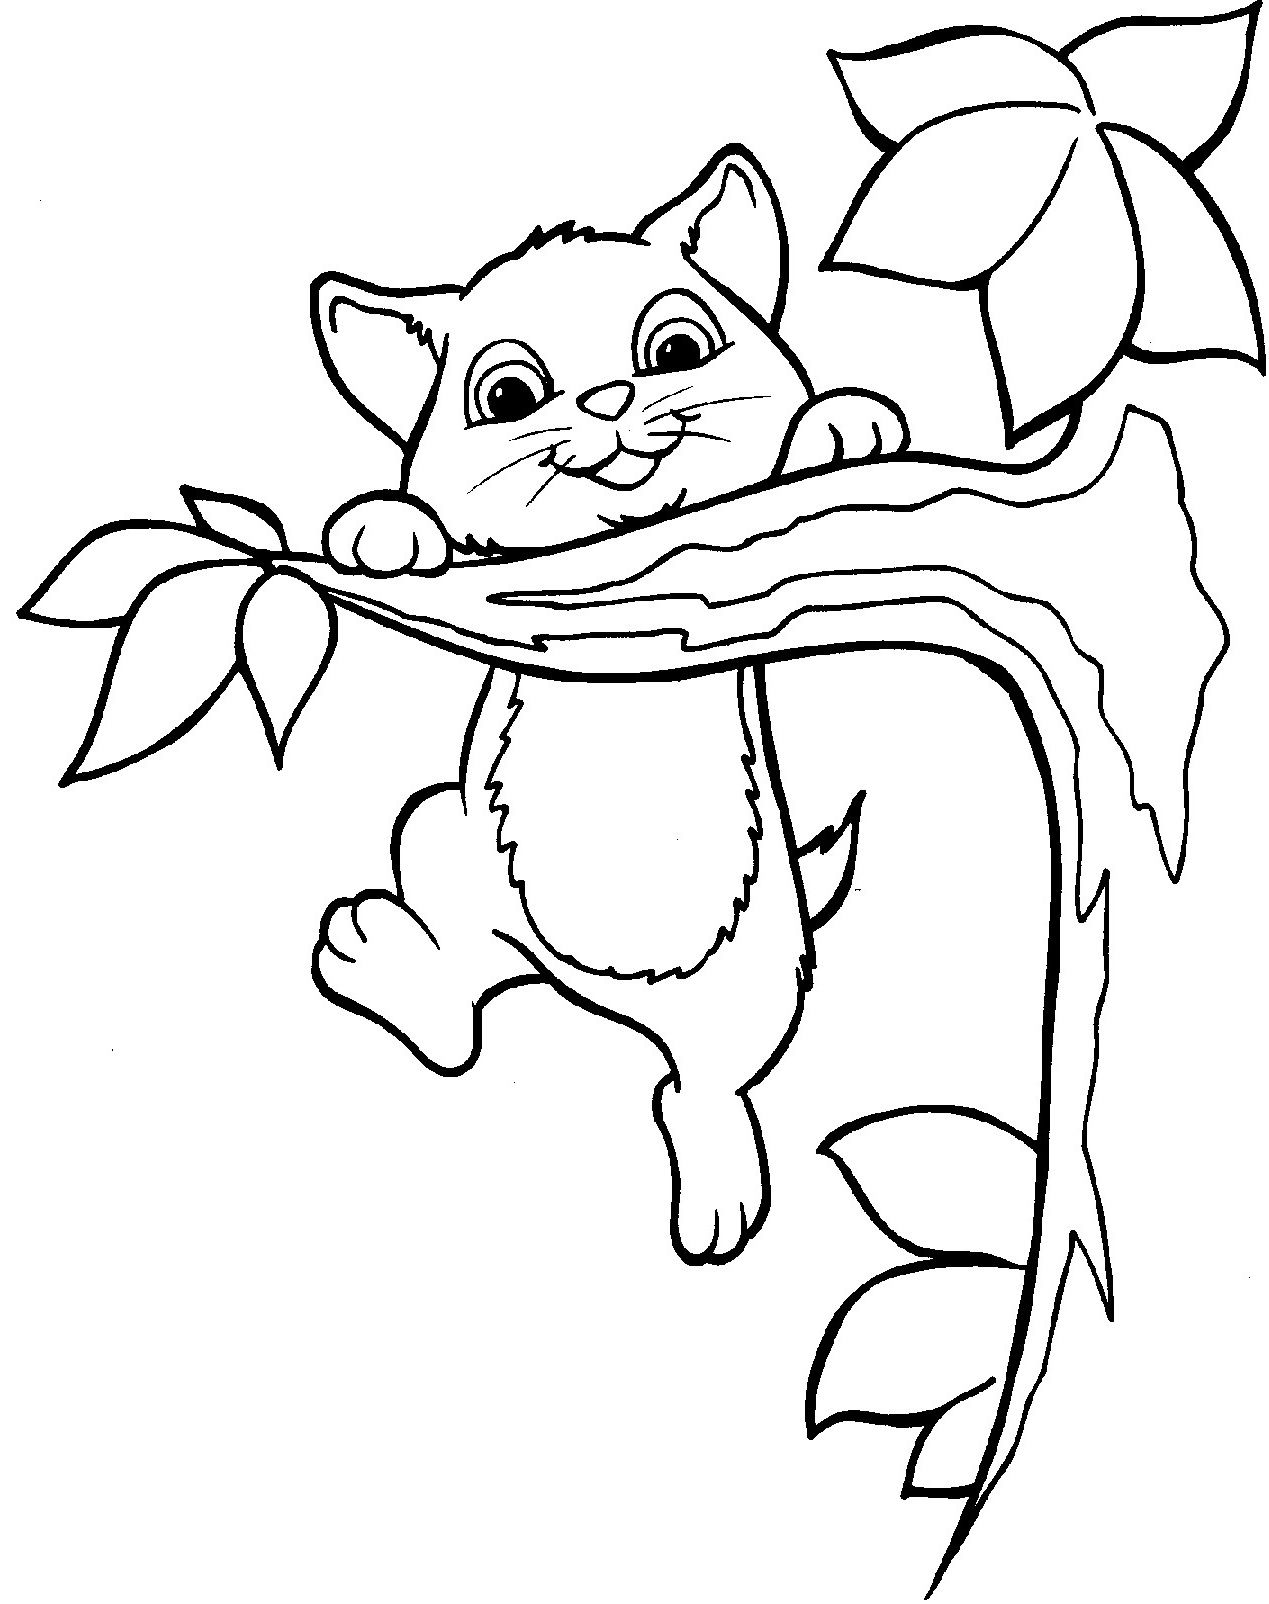 The Cat Climbed The Tree Coloring Pages Cat Coloring Page Tree Coloring Page Animal Coloring Pages